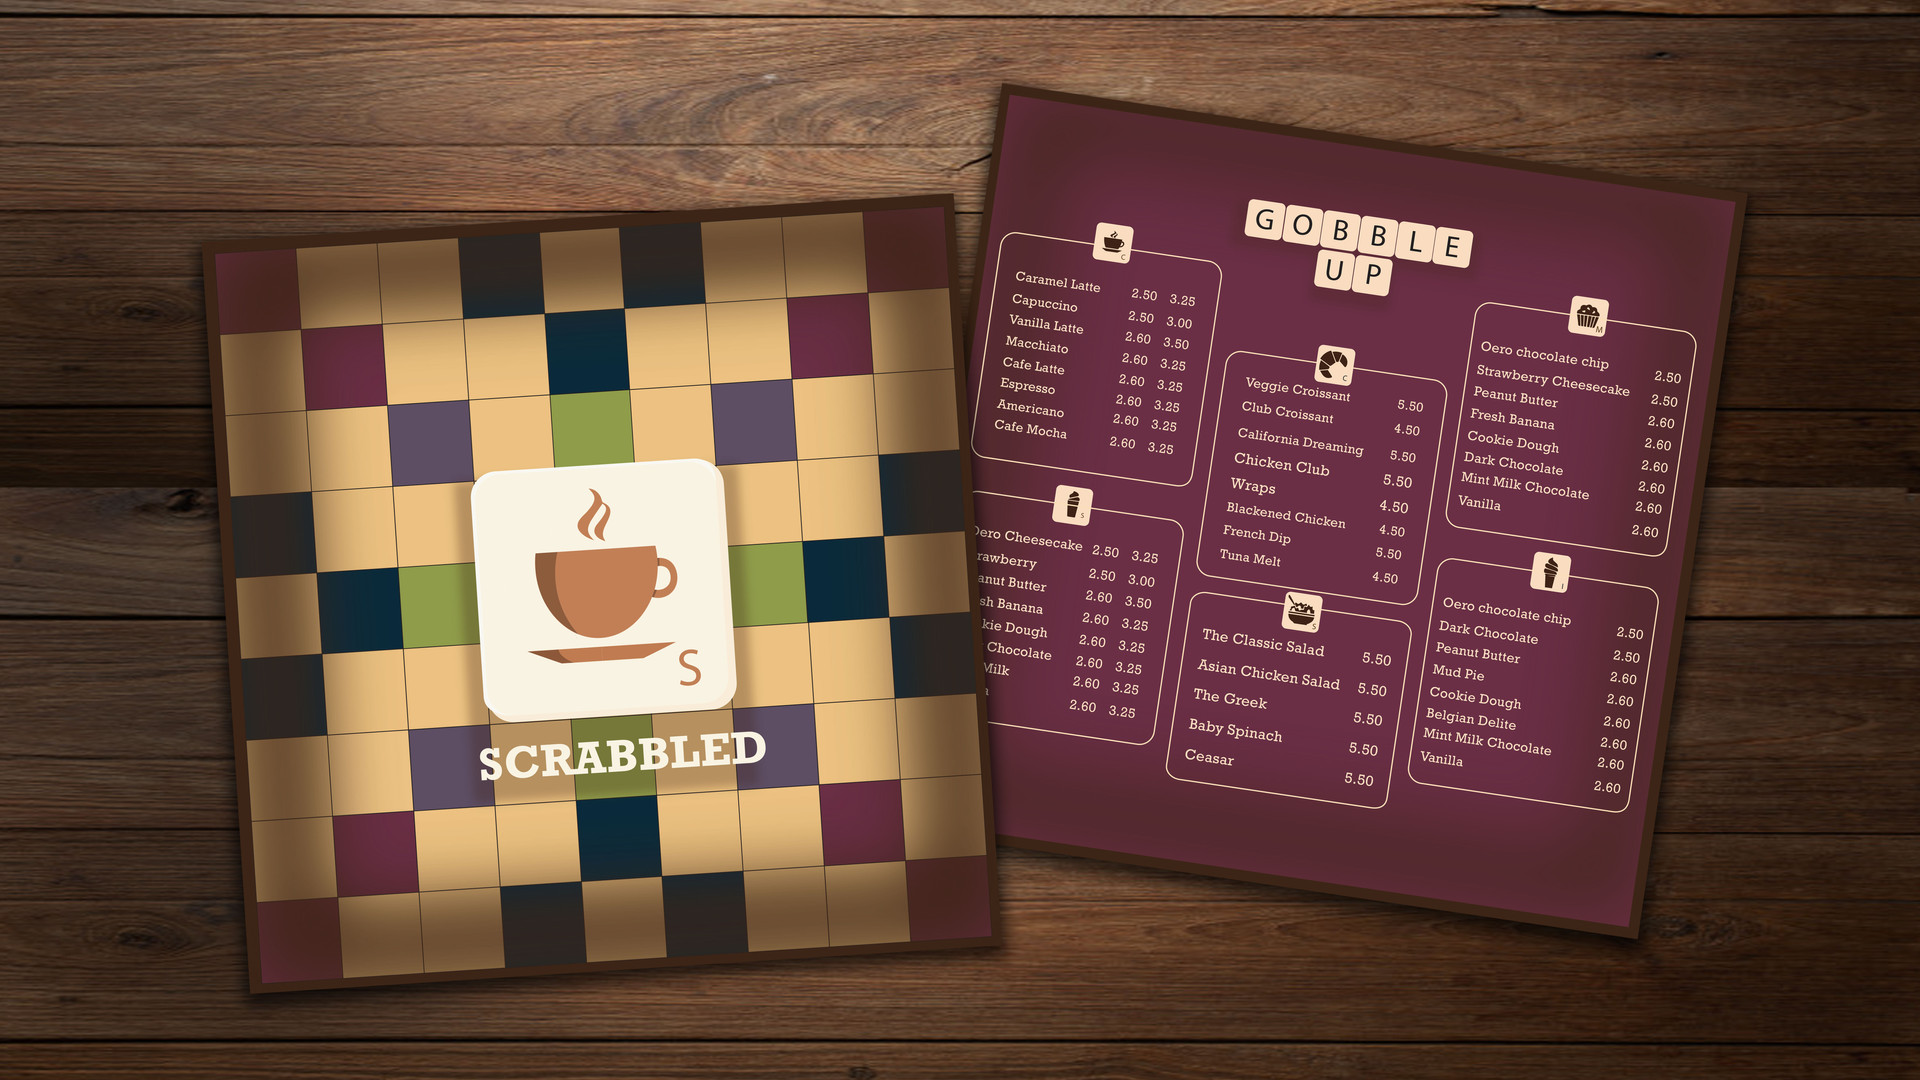 Scrabbled | Boardgame Cafe